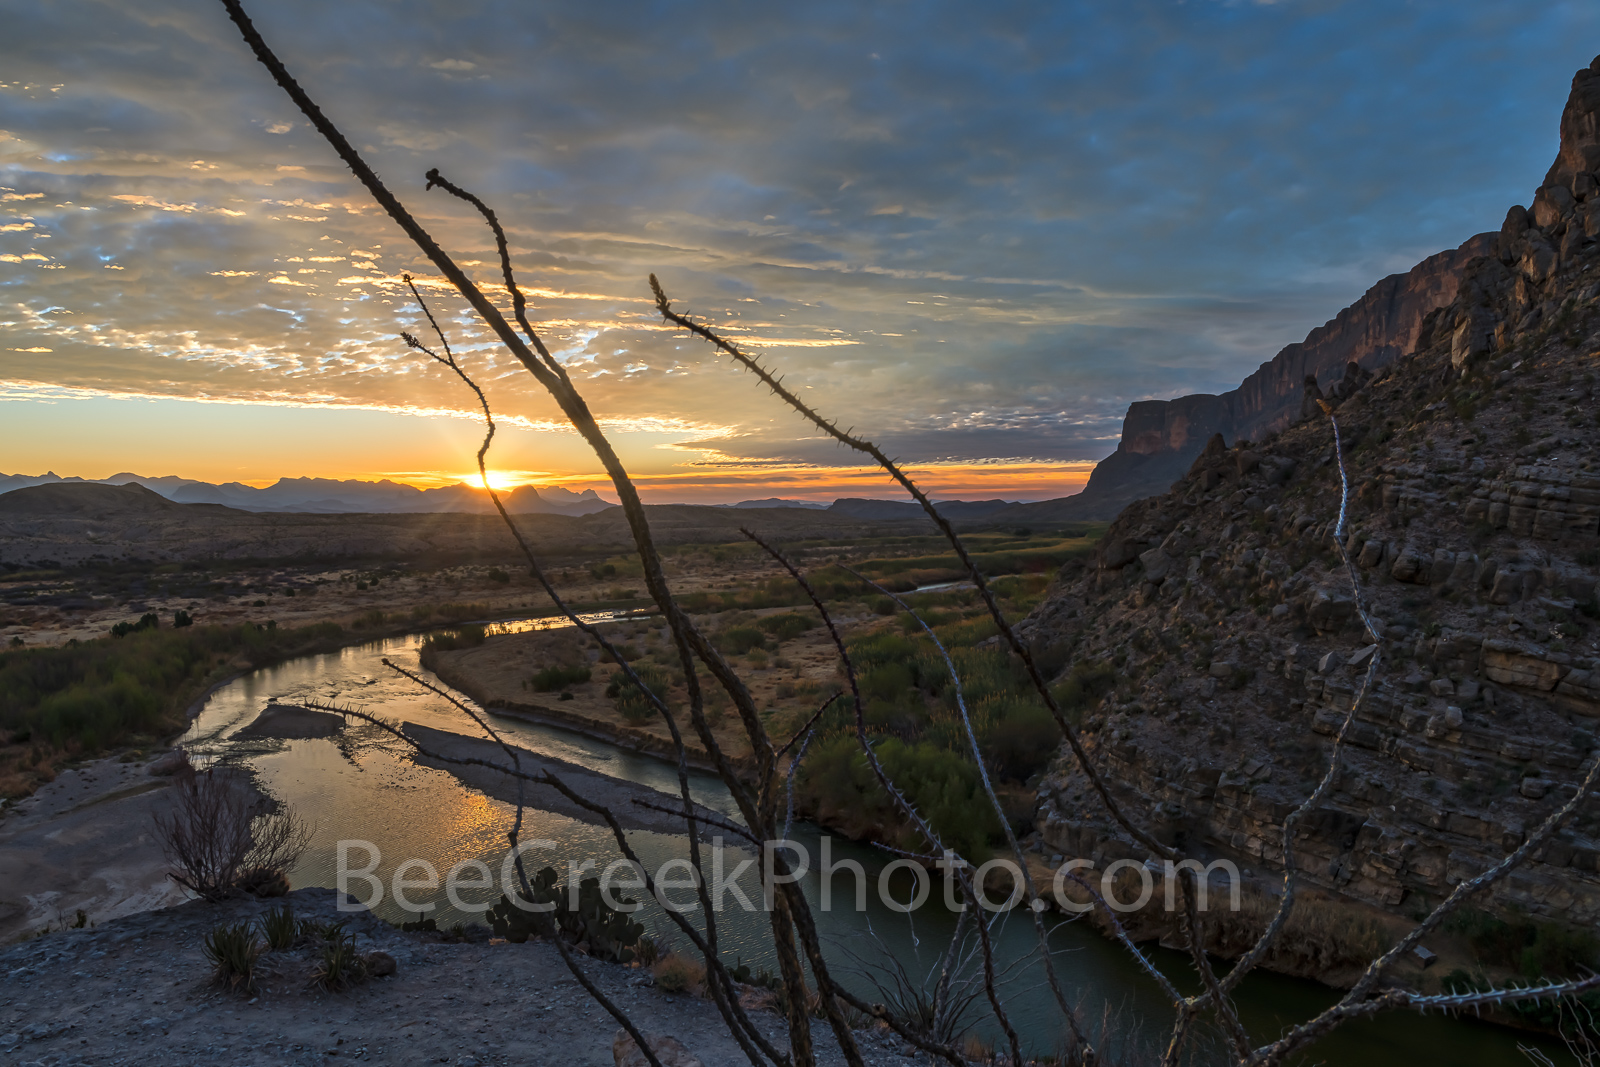 Santa Elena Canyon Sunrise2, Santa Elena Canyons, sunrise, morning glow, rays, Rio Grande river, morning, Octillo, morning, Ross Maxwell Scenic Drive, Big Bend National Park, Texas, texas landscape, B, photo